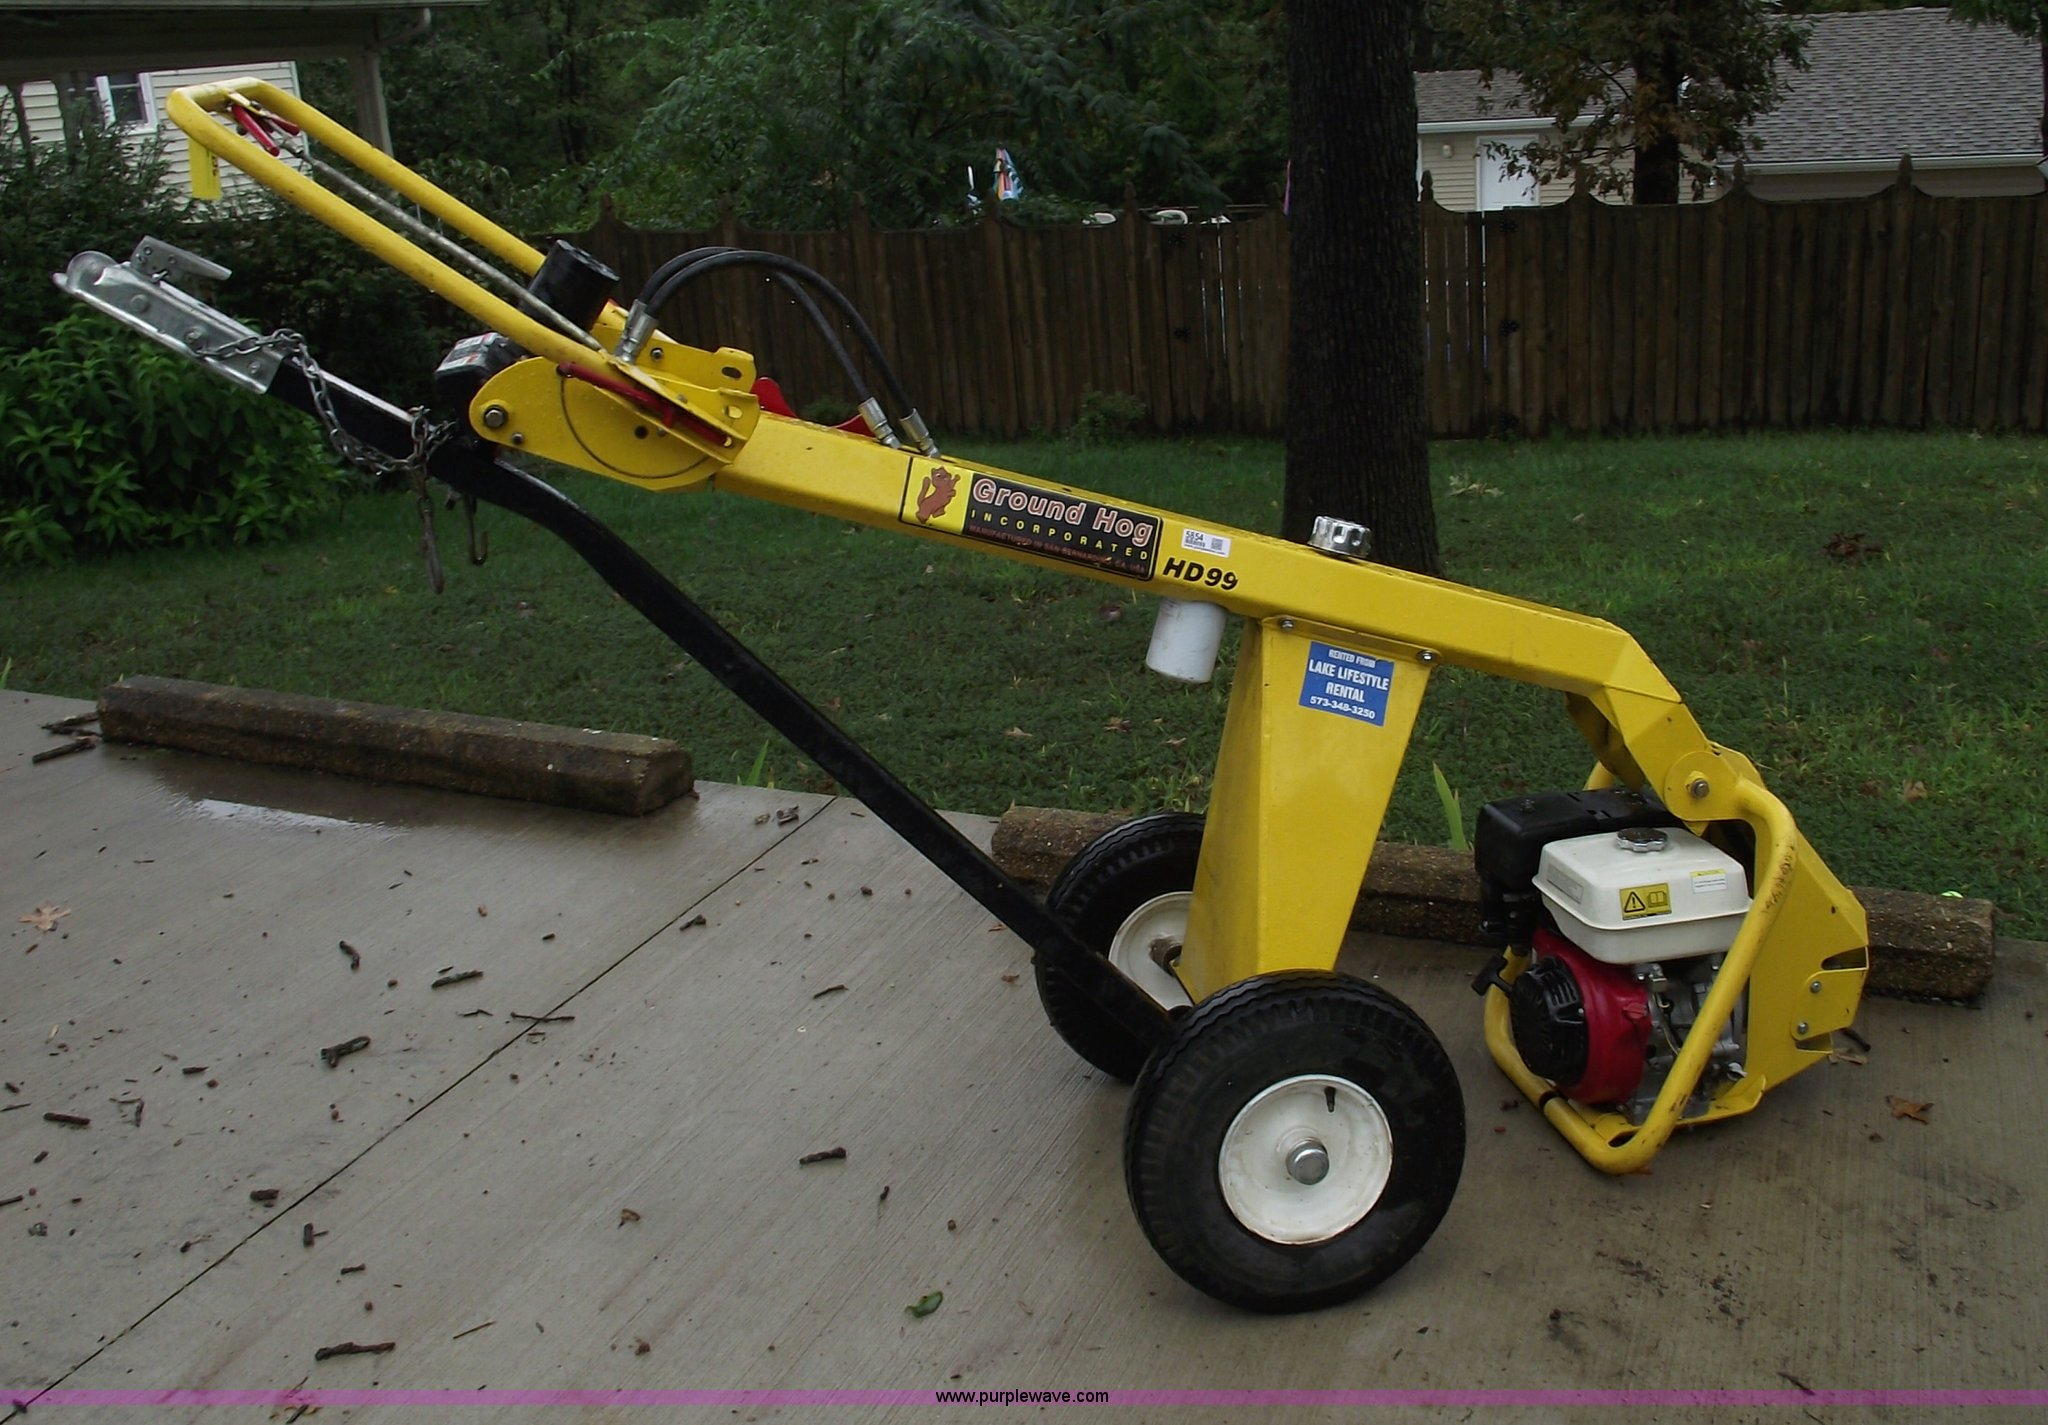 Ground Hog HD99 towable auger | Item 5854 | SOLD! September